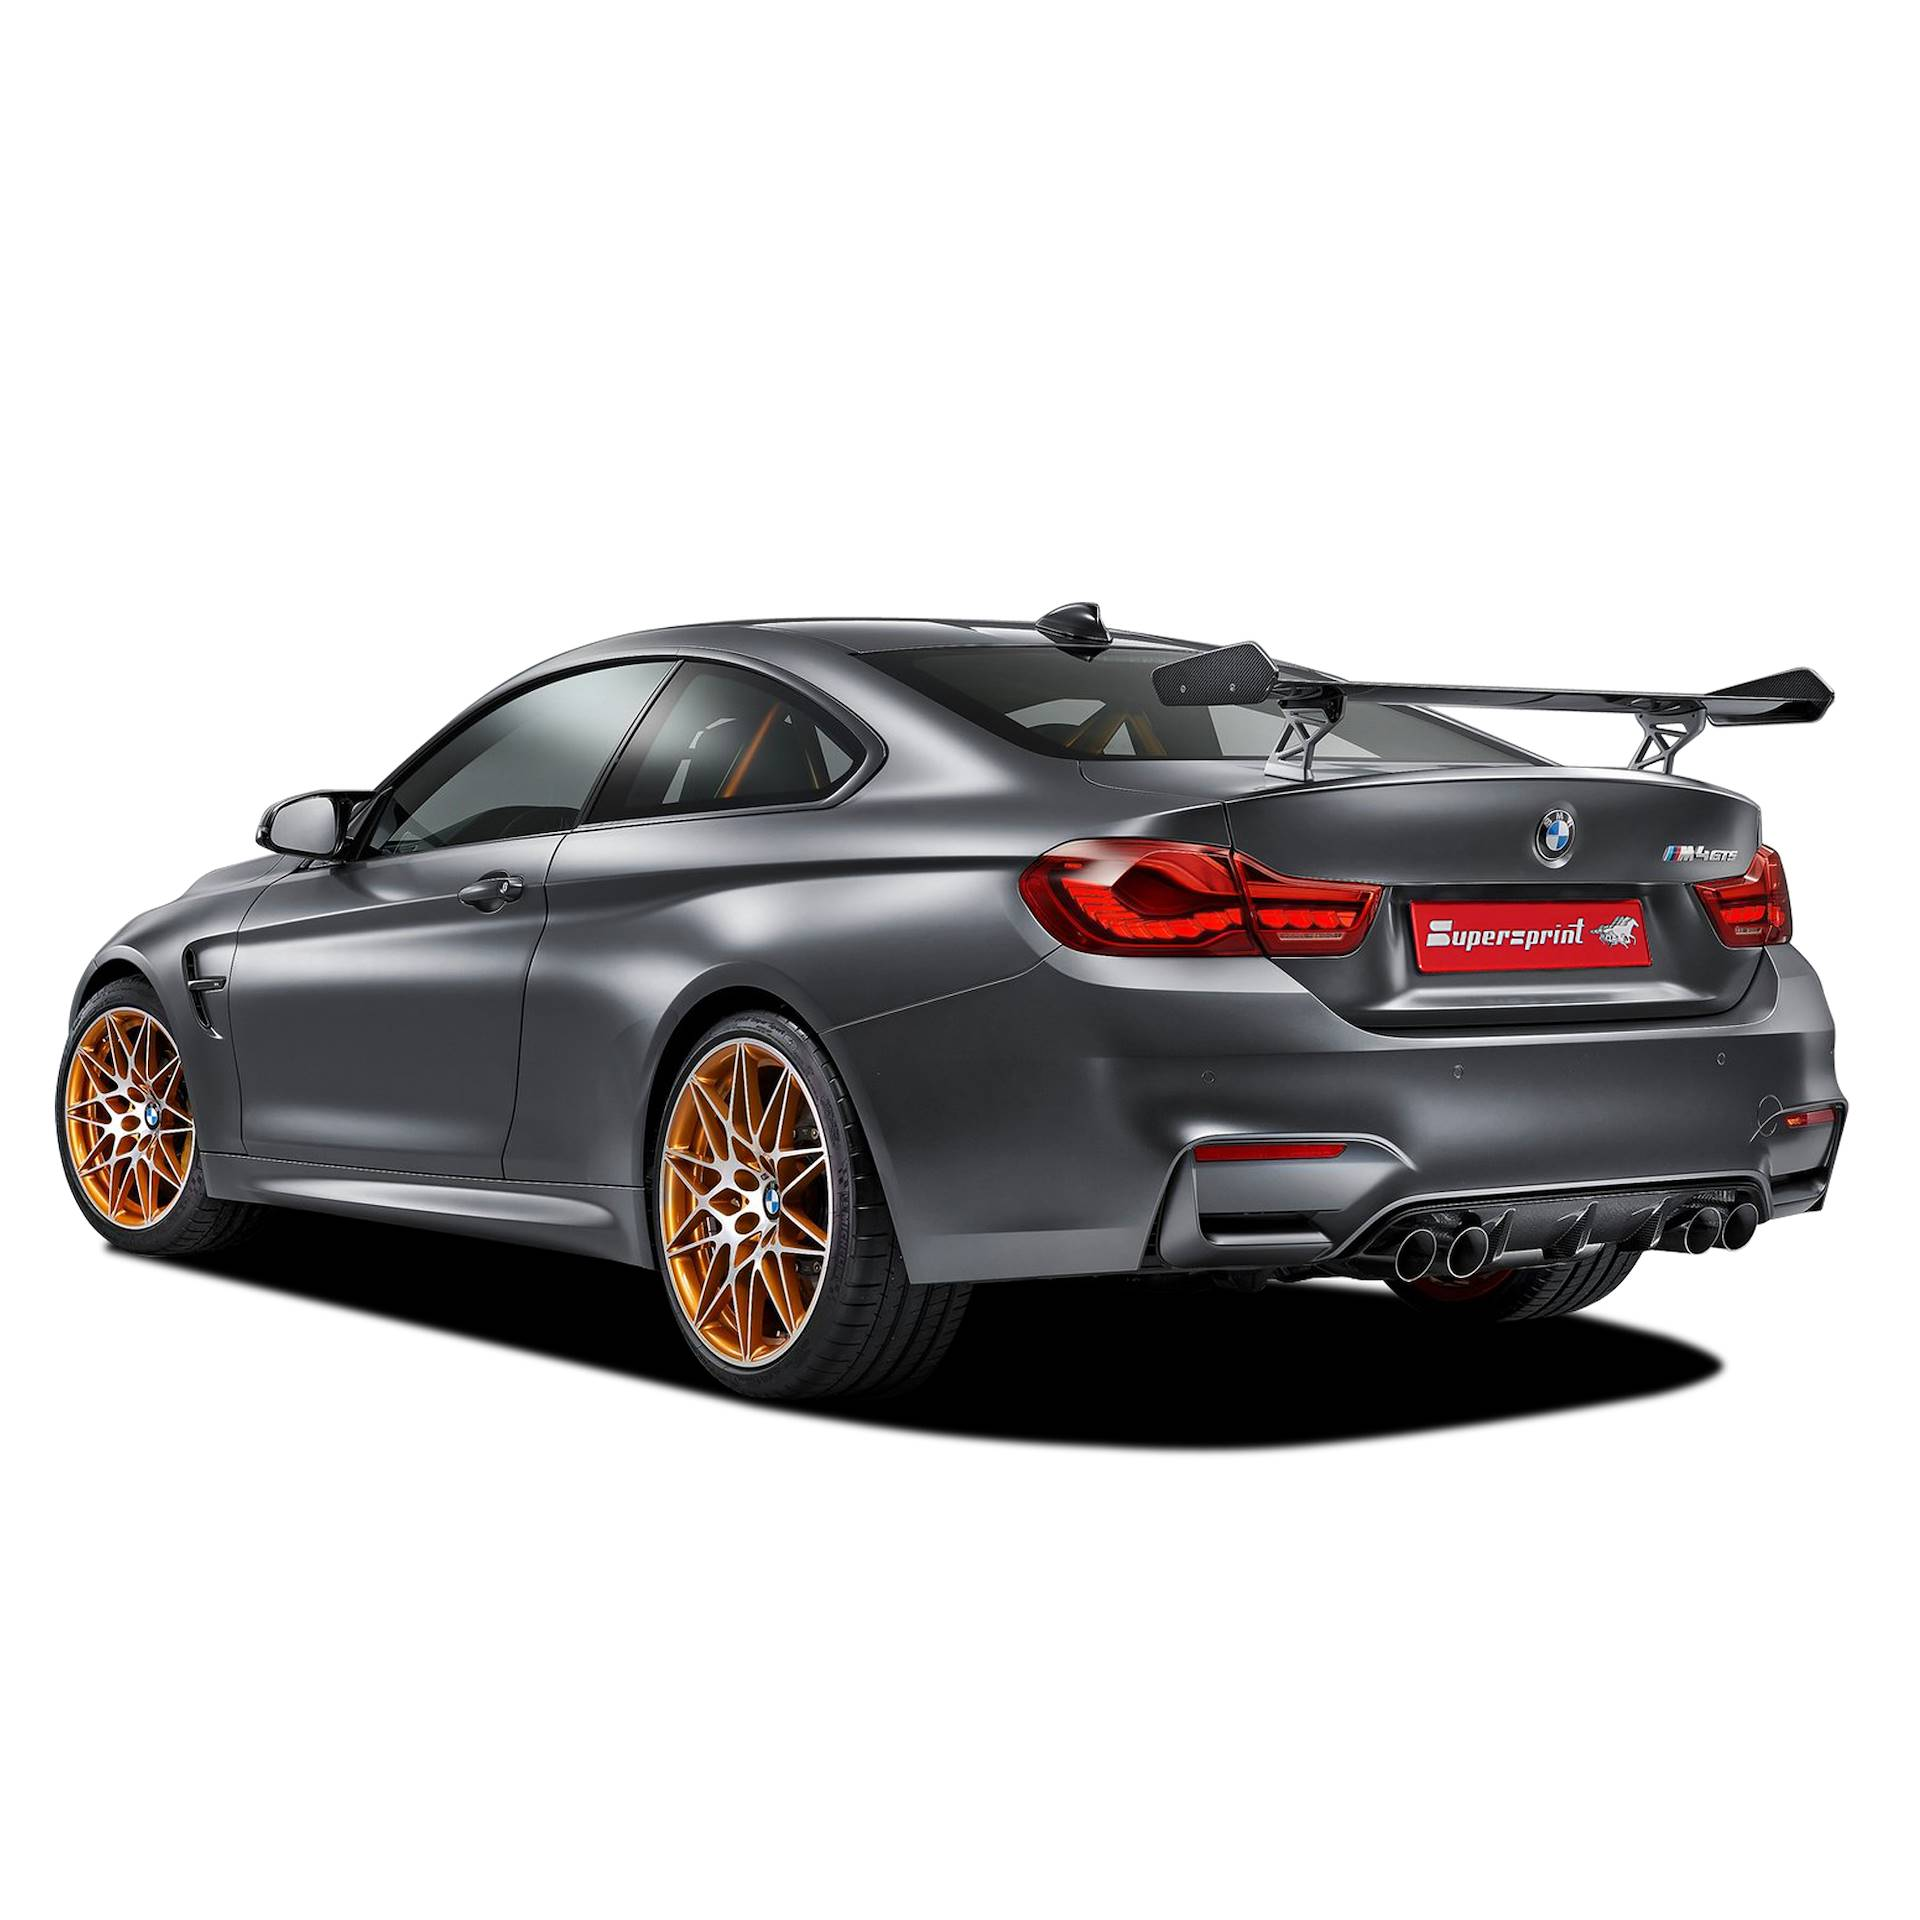 BMW M - BMW F82 M4 GTS (500 Hp) 2016 -> 2017 (with valve)